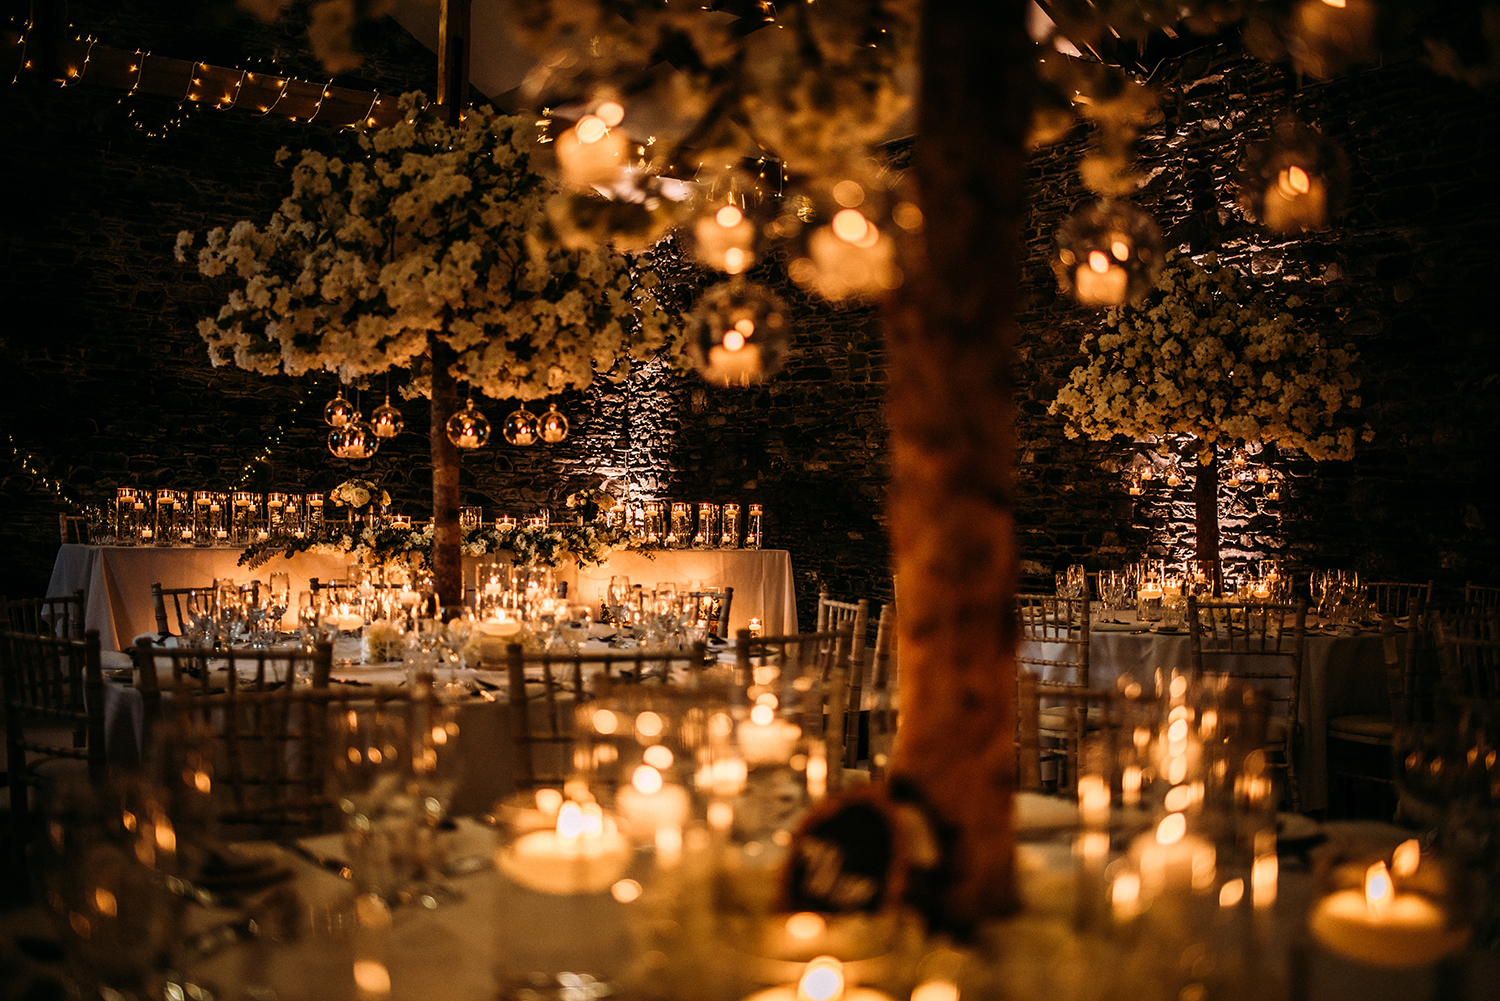 candles hanging from trees on the tables set for the wedding breakfast